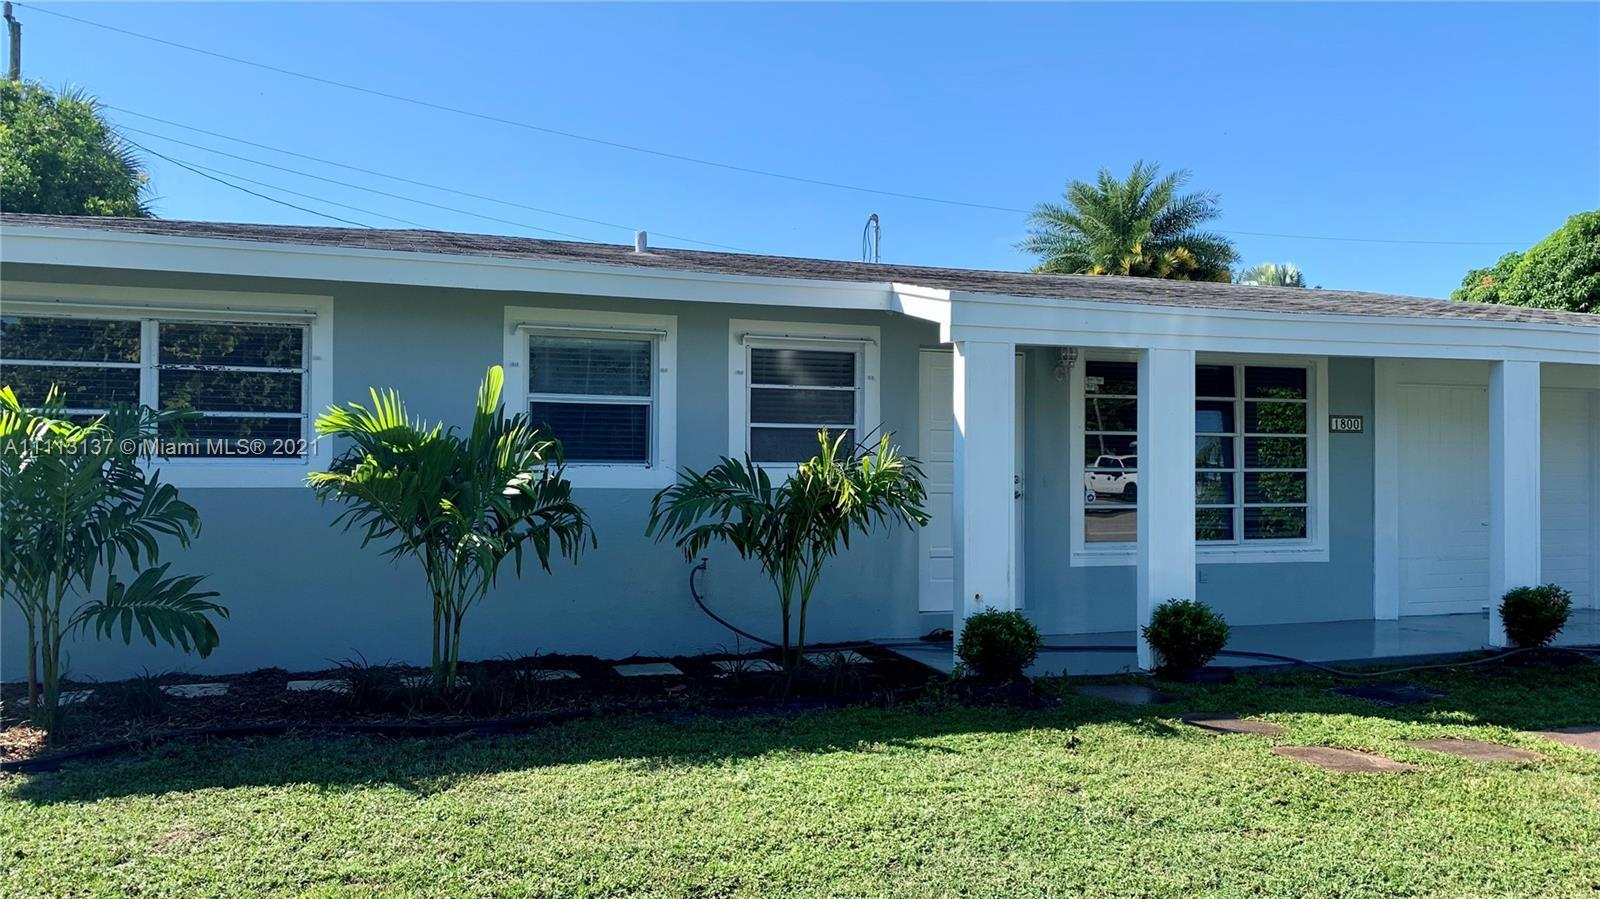 LOCATION, LOCATION MOTIVATED SELLERS - BRING ALL YOUR OFFERS! WELCOME TO POMPANO BEACH A GREAT CITY